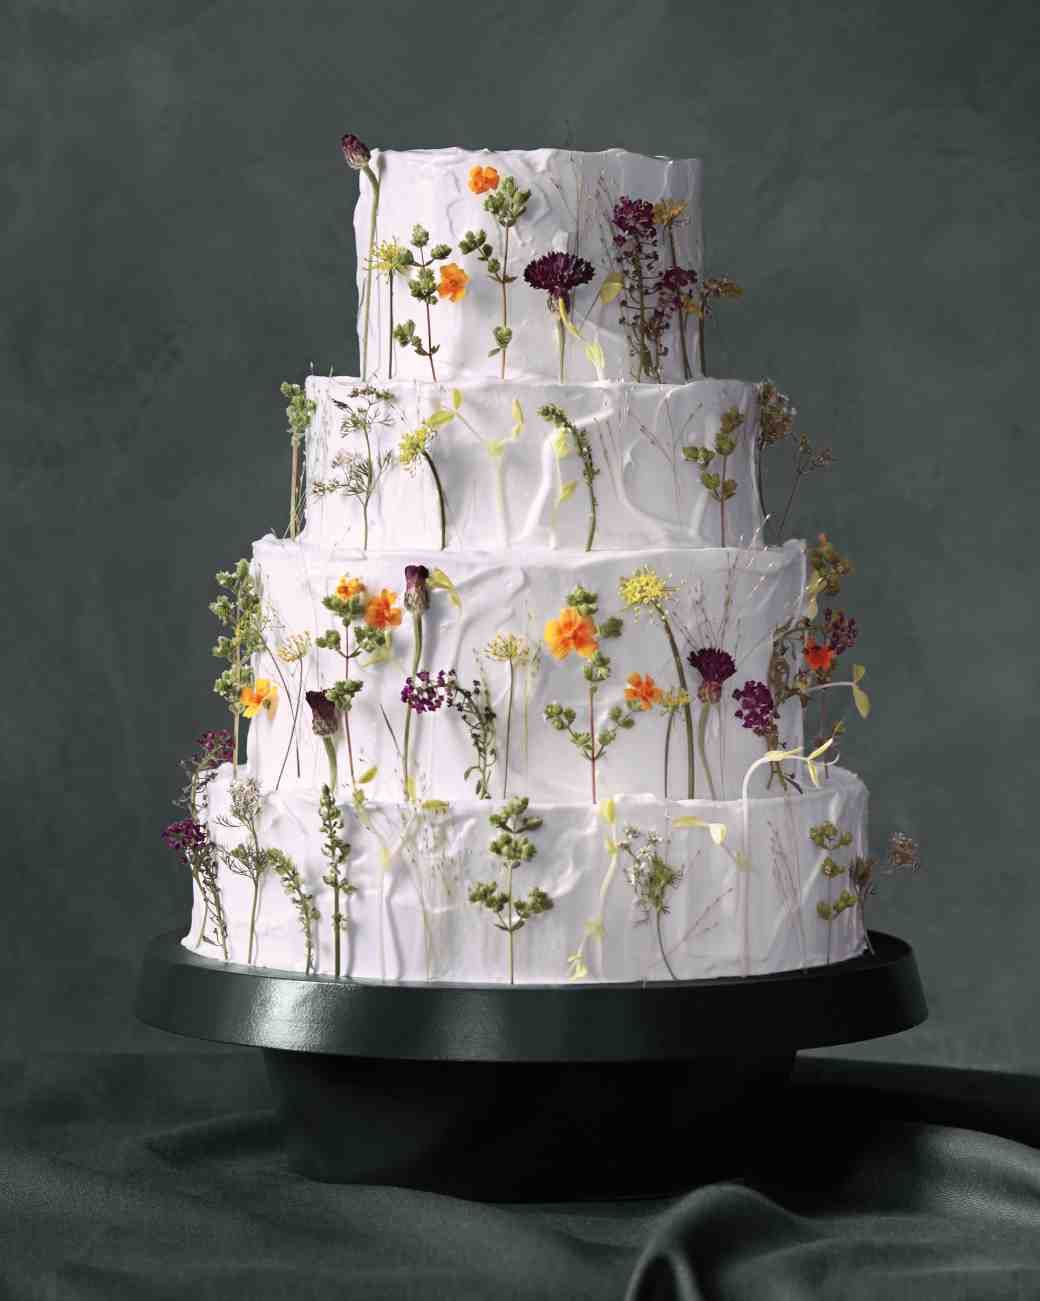 decorate wedding cake with fresh flowers 6 fresh ways to decorate wedding cakes with flowers 13390